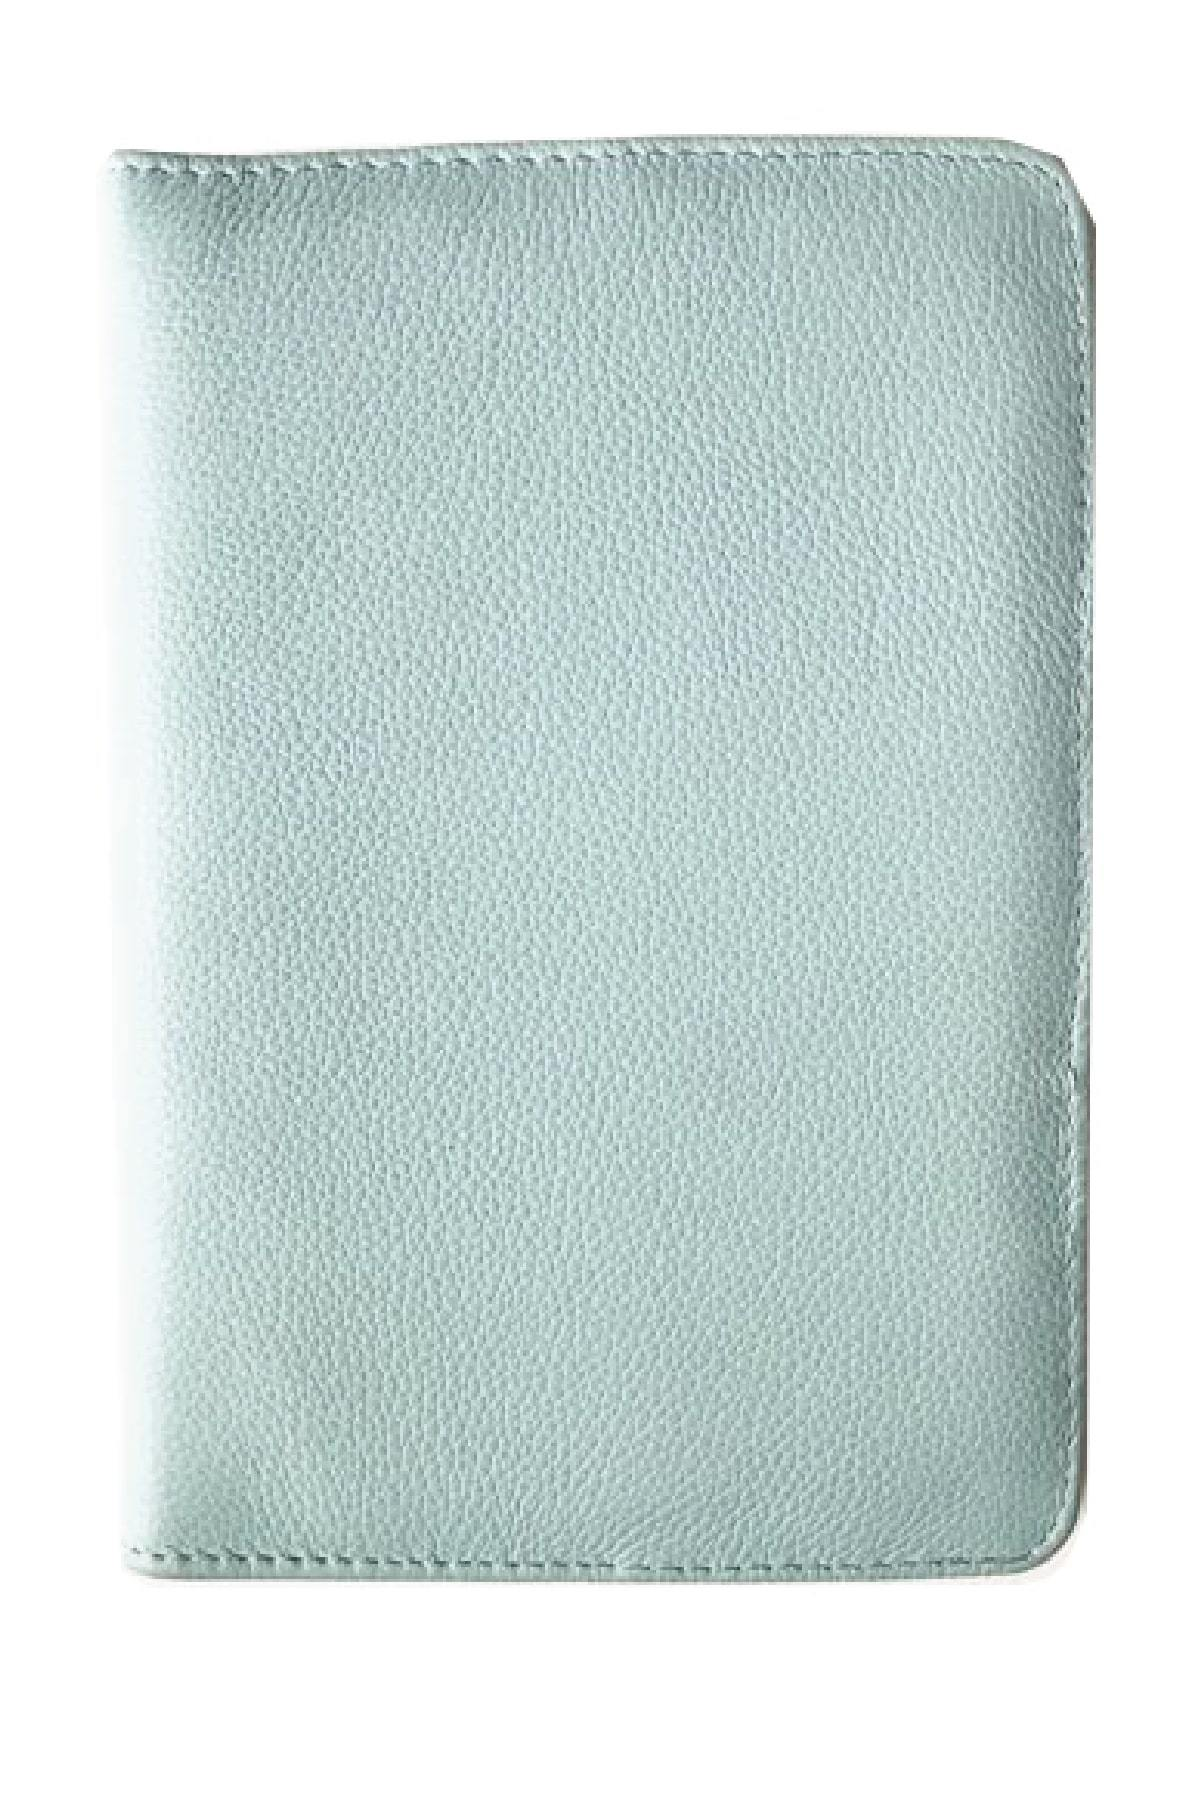 paper-sunday-Leather Journal: Powder Blue-christian-personalized-scripture-Leather Journal-bible-verses-about-love-faith-hope